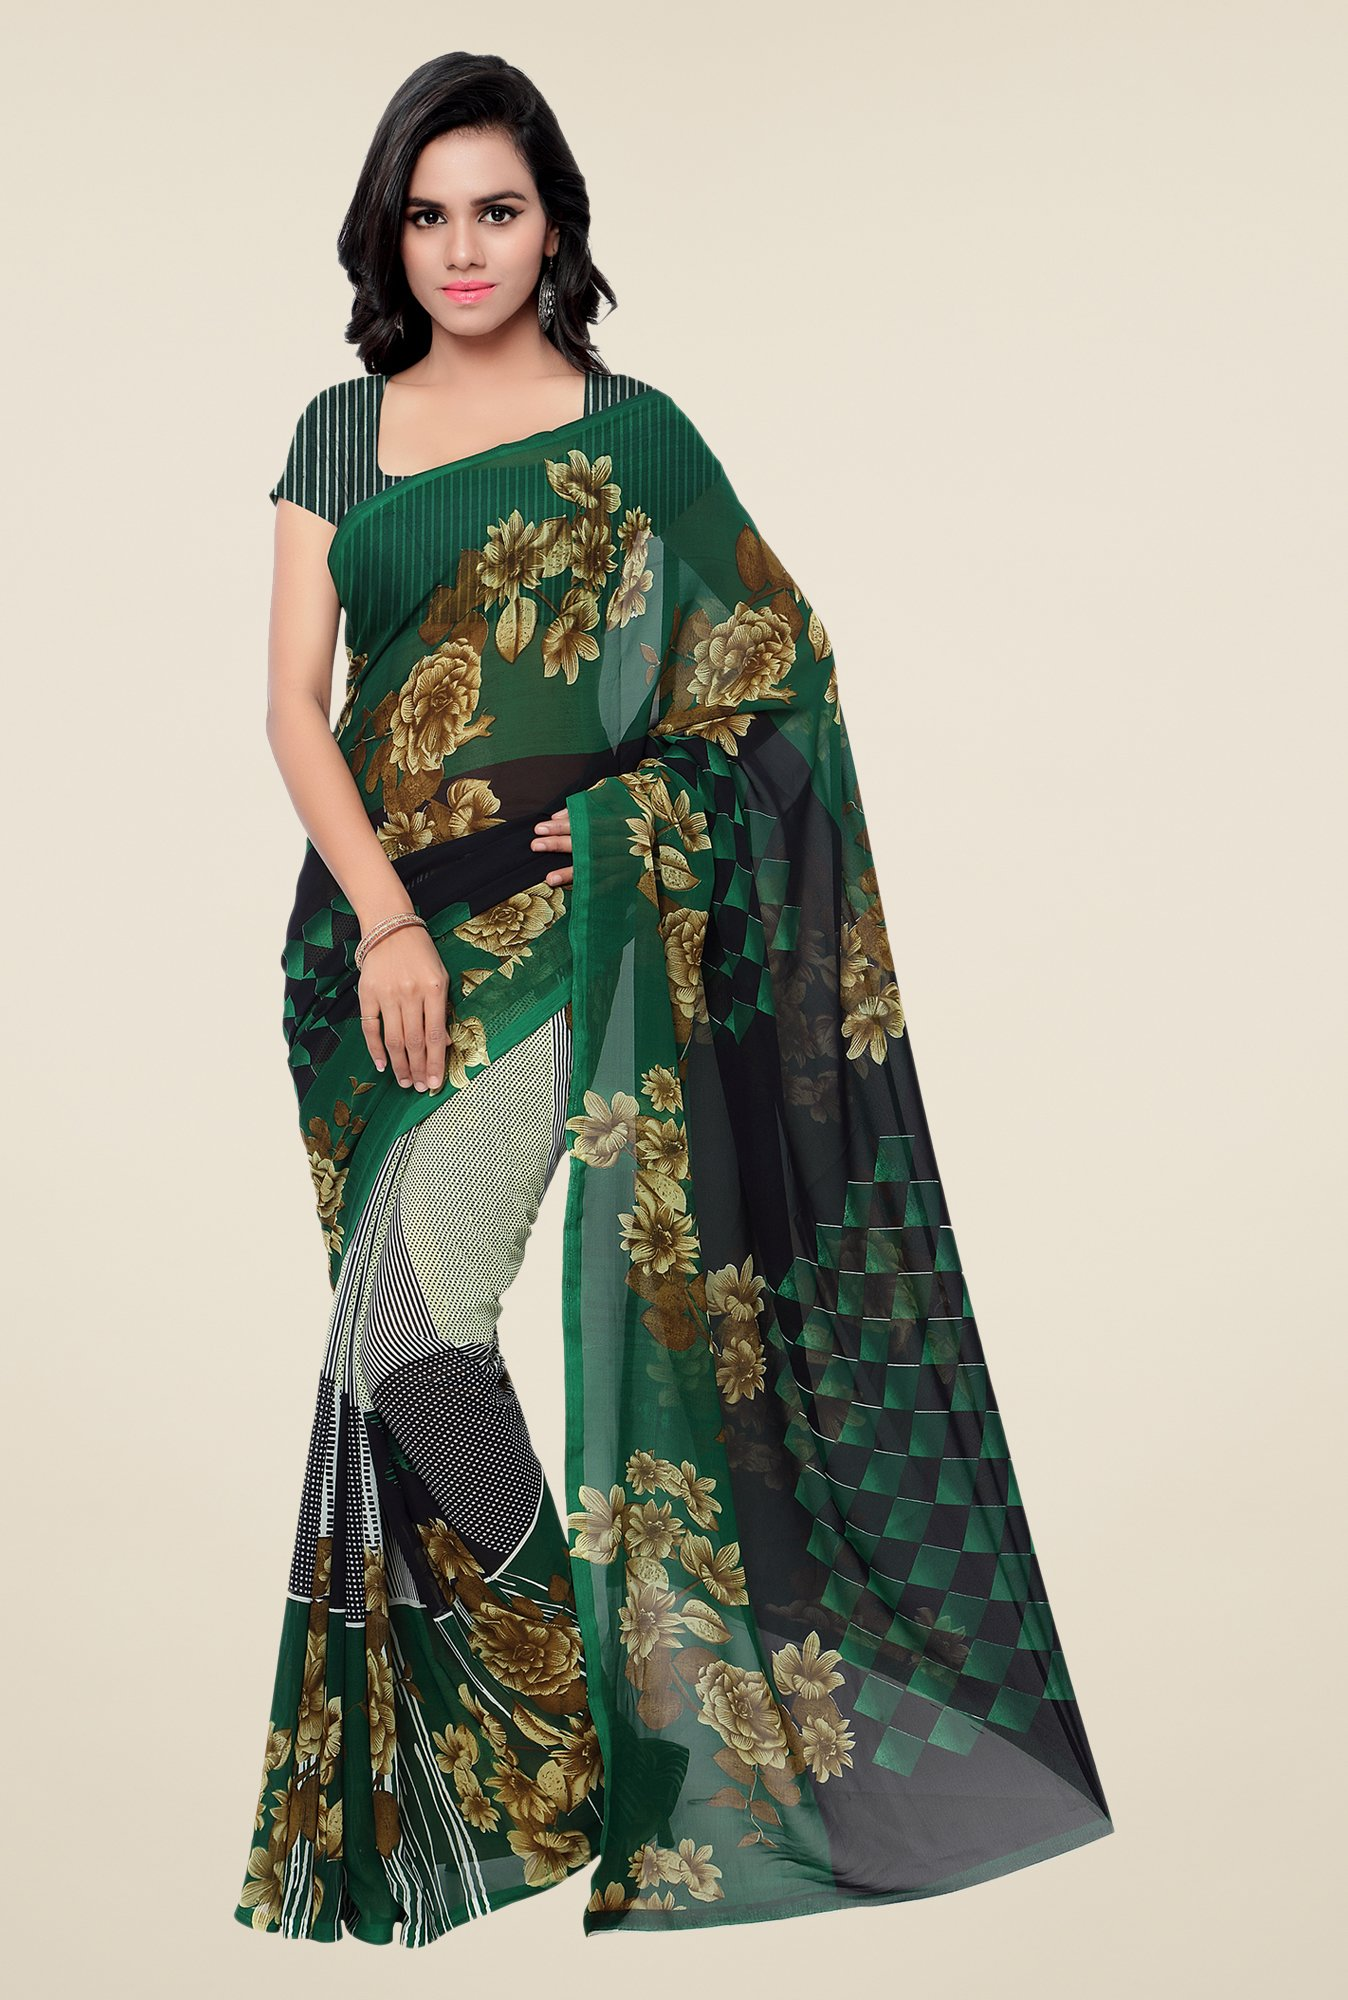 Shonaya Green & Black Georgette Floral Print Saree